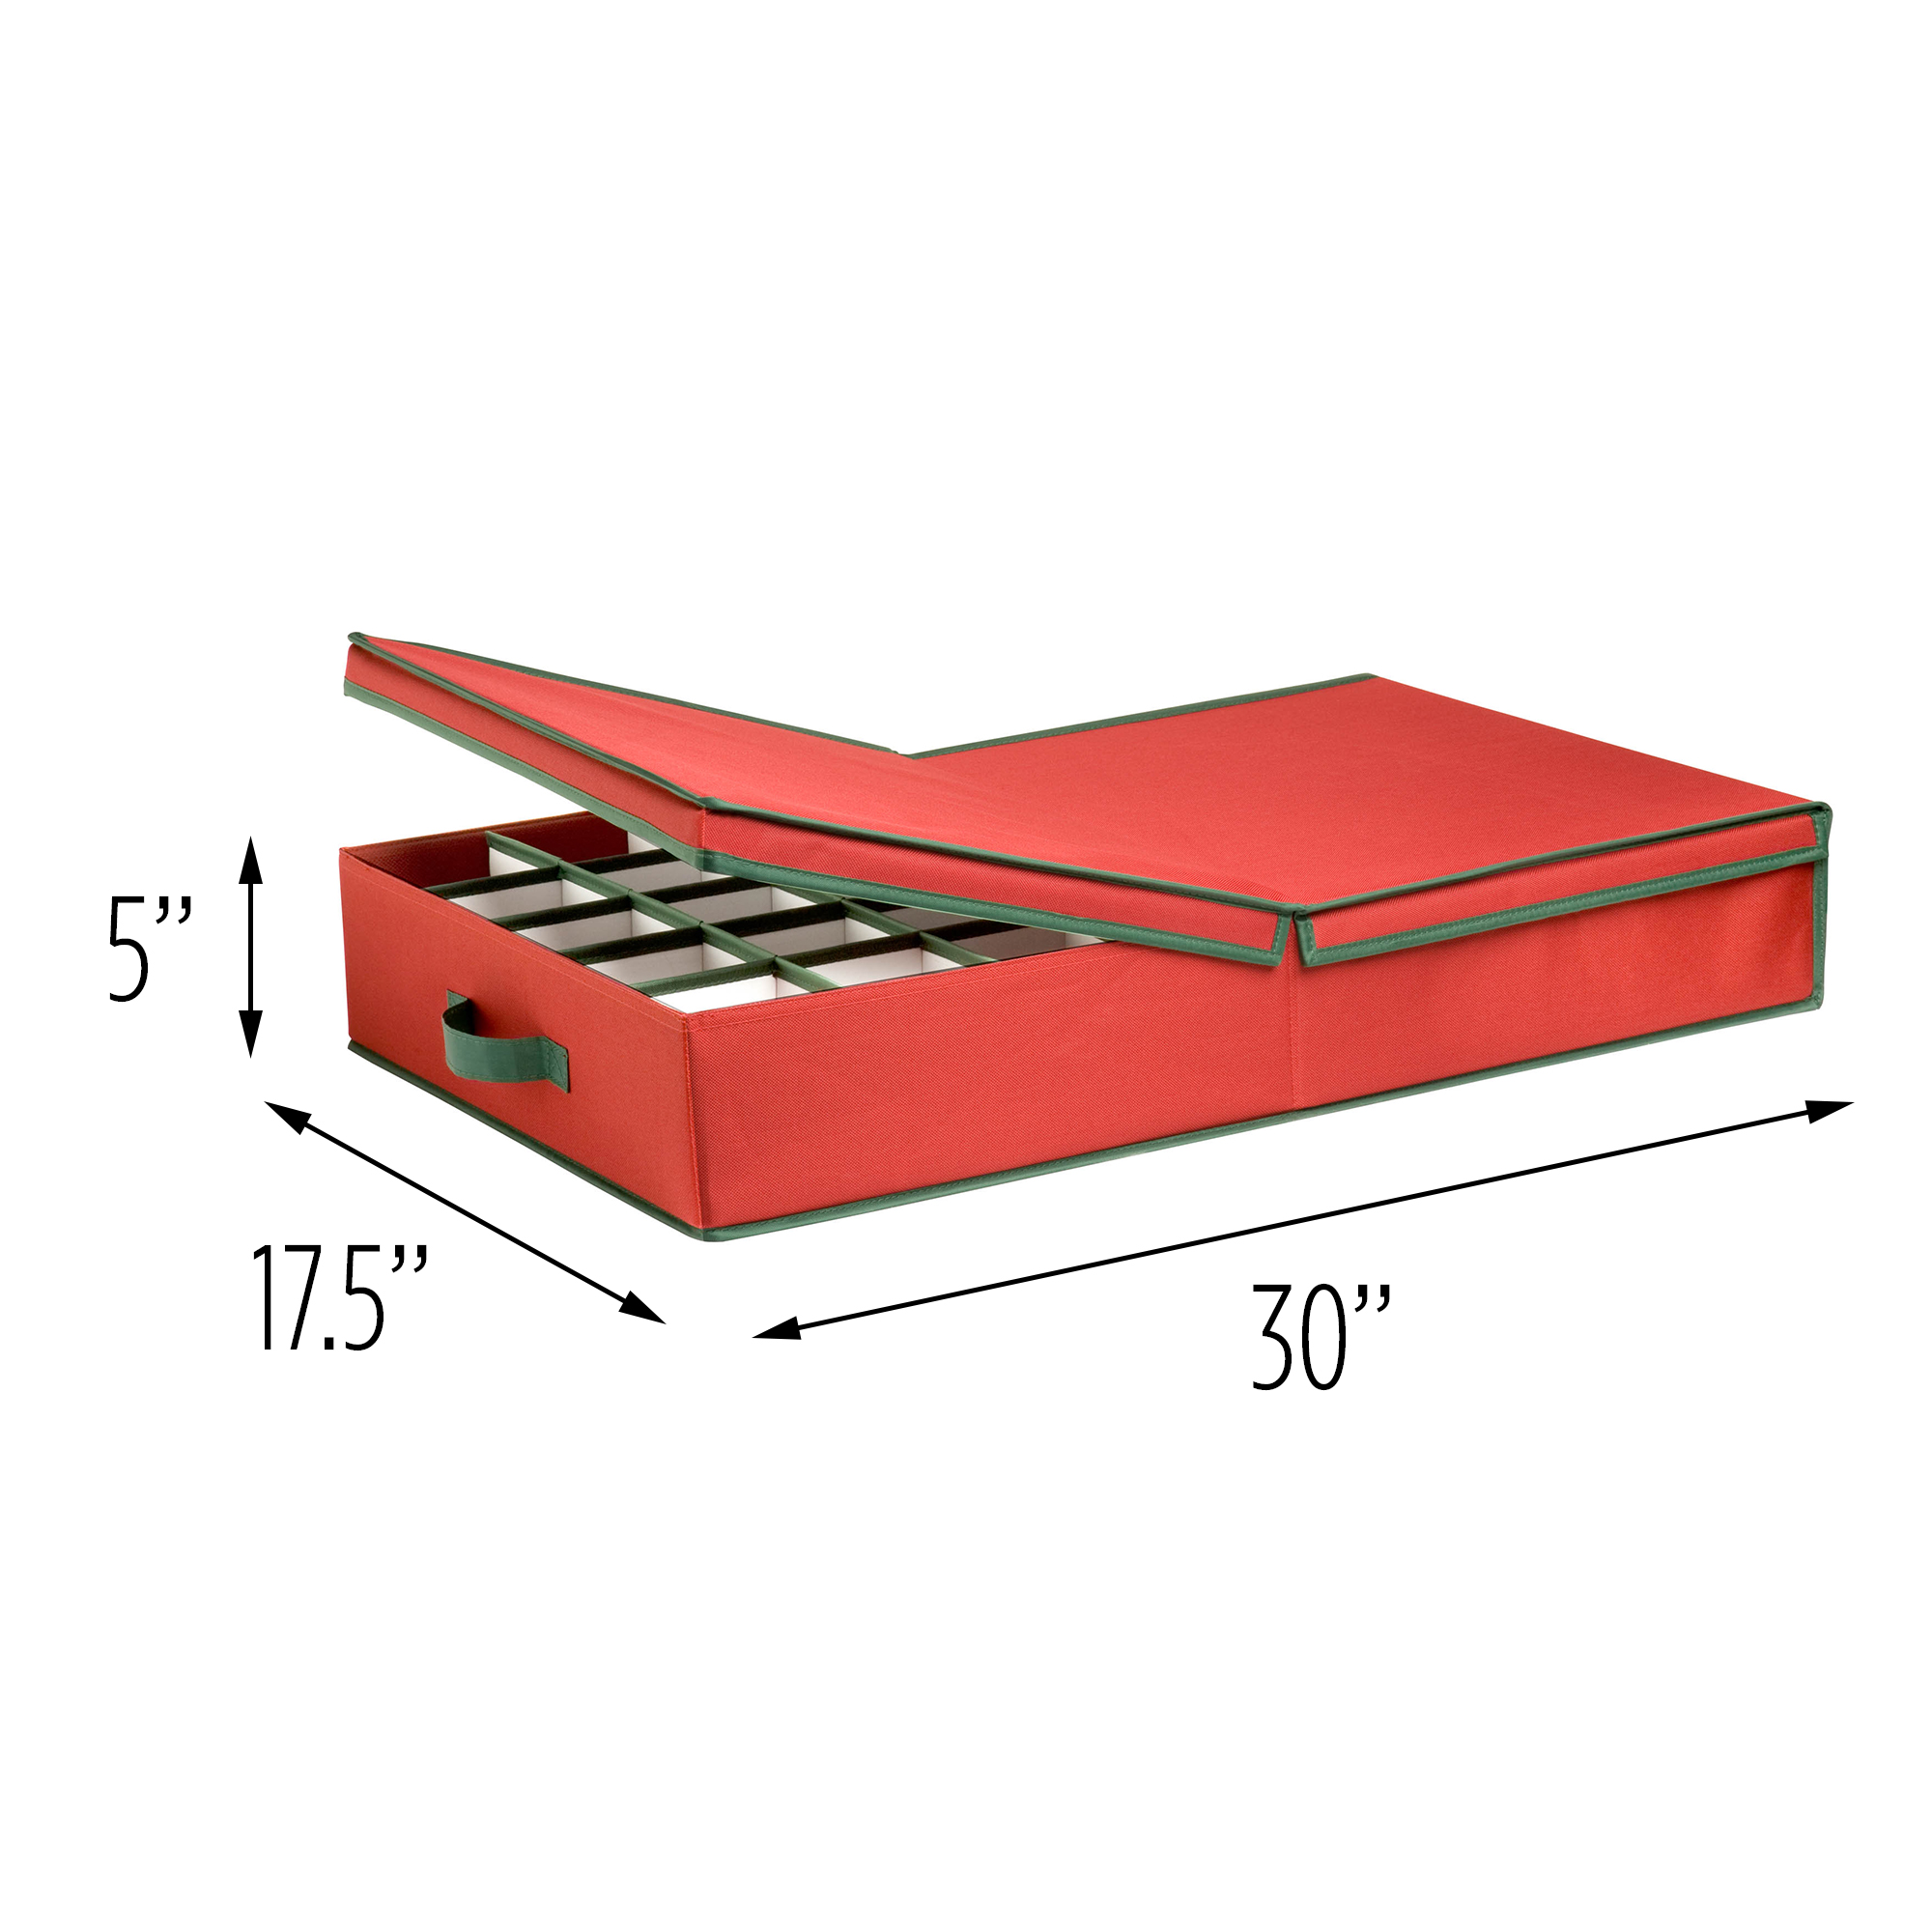 Gentil Honey Can Do Ornament Storage Organizer With Adjustable Dividers, Red/Green    Walmart.com